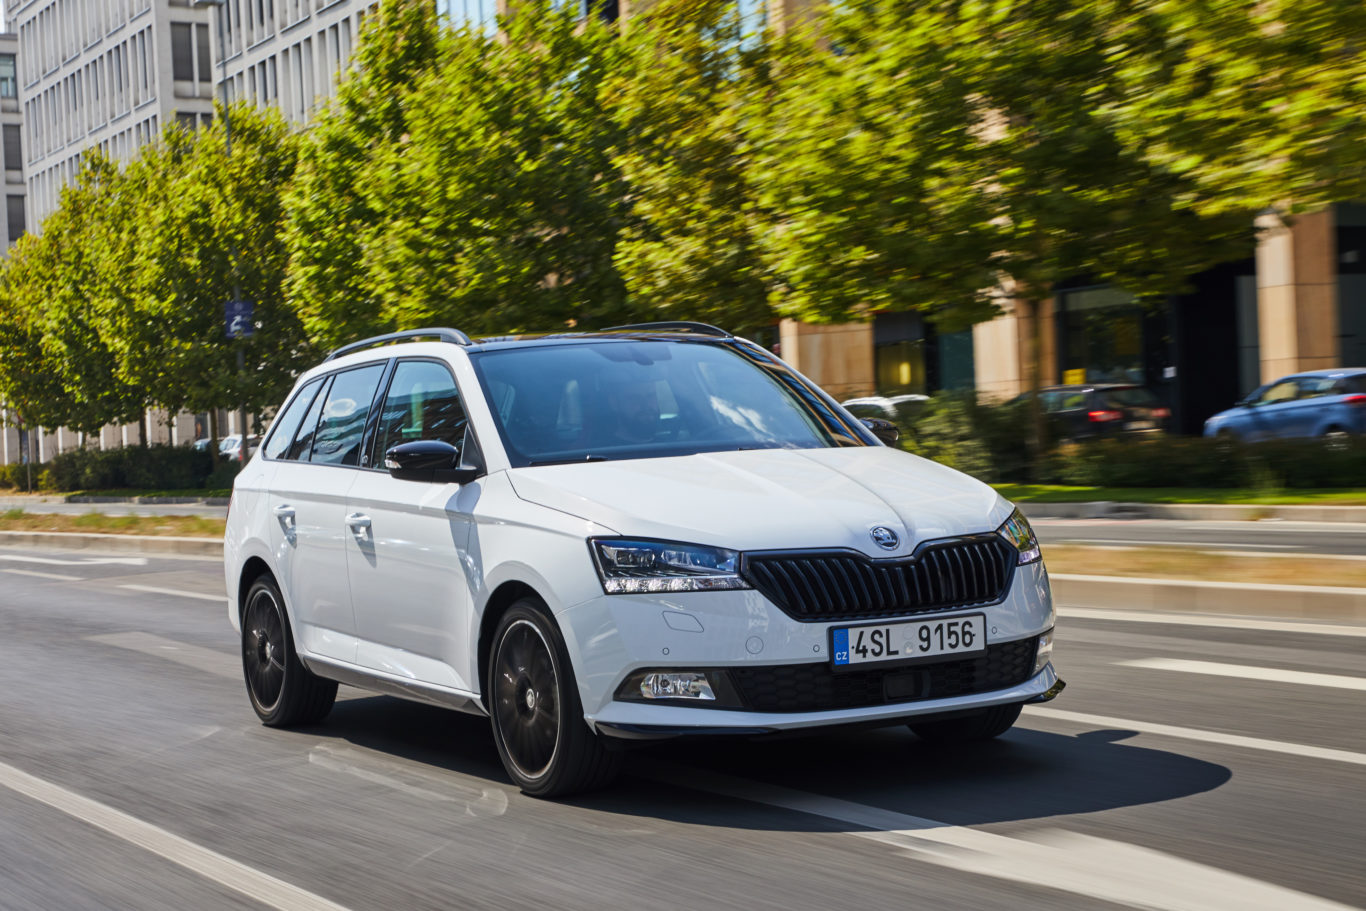 The updated Fabia features refreshed headlights